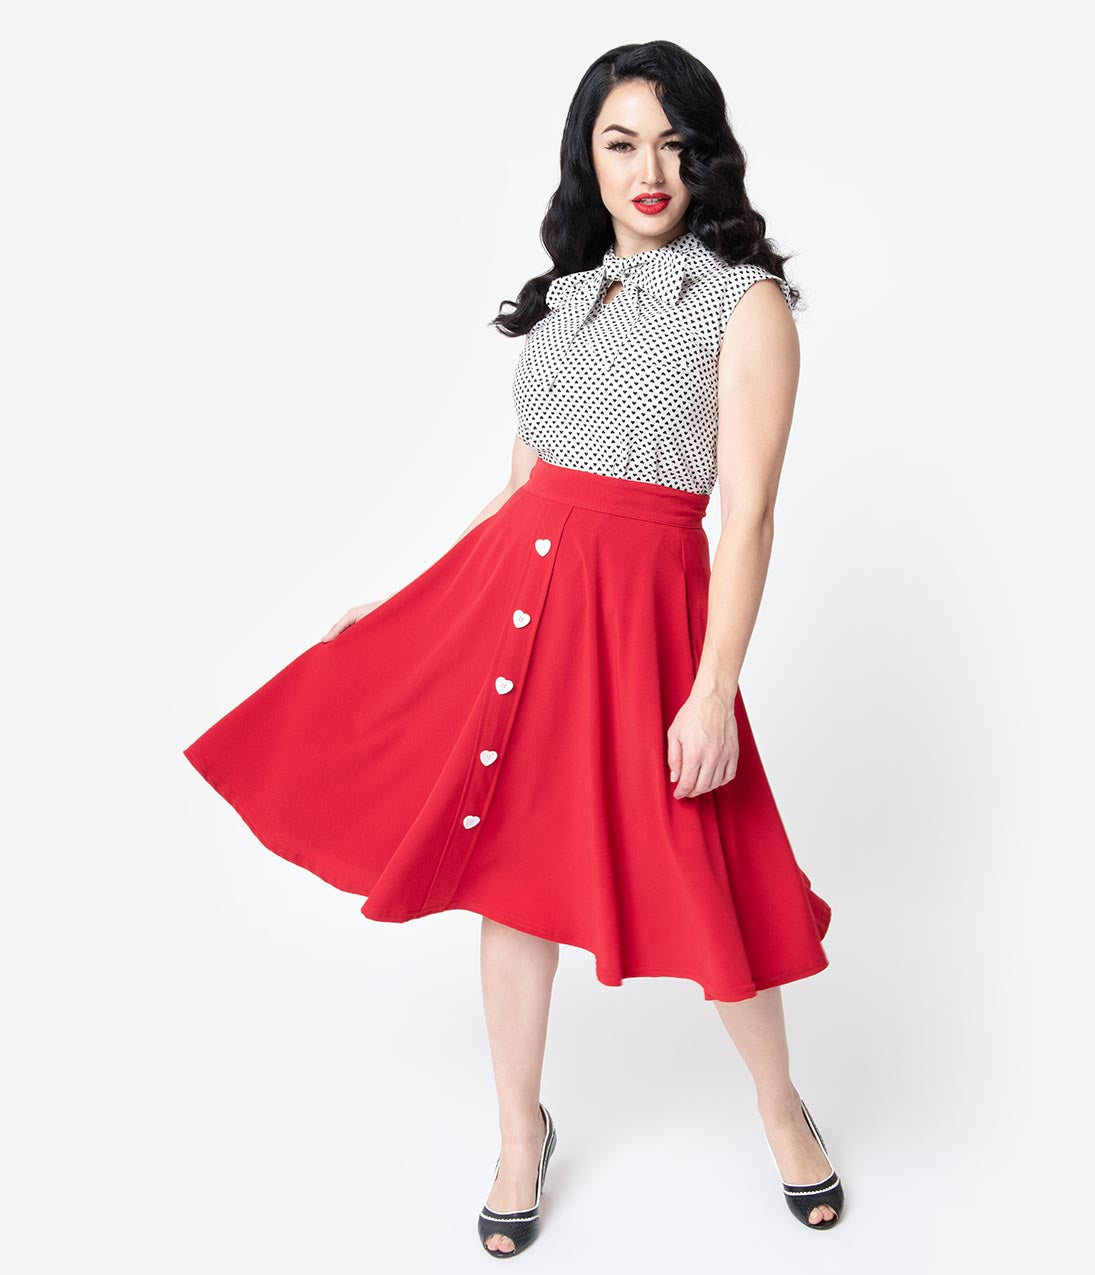 Vintage Christmas Dress | Party Dresses | Night Out Outfits Steady Red  White Button Be Still My Heart High Waisted Thrills Skirt $52.00 AT vintagedancer.com